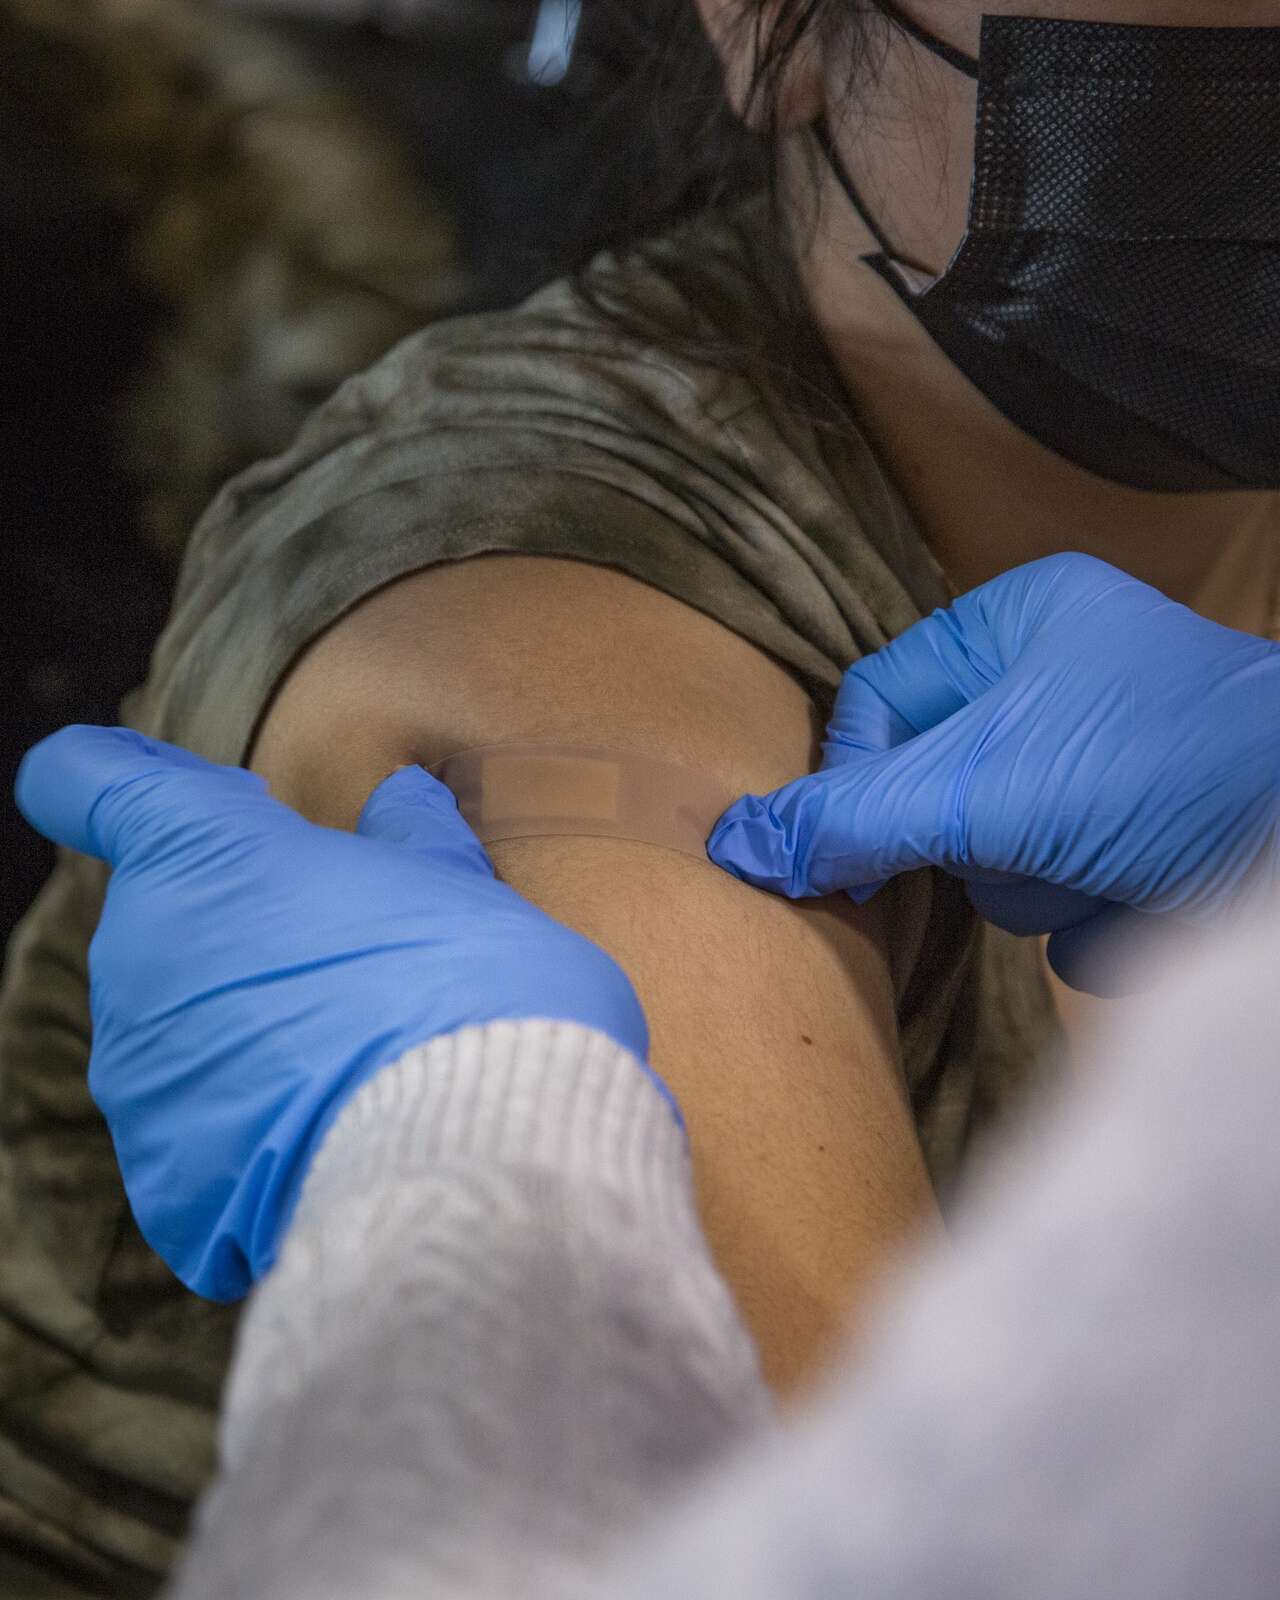 Summit County's COVID cases have fallen sharply while vaccinations ramp up